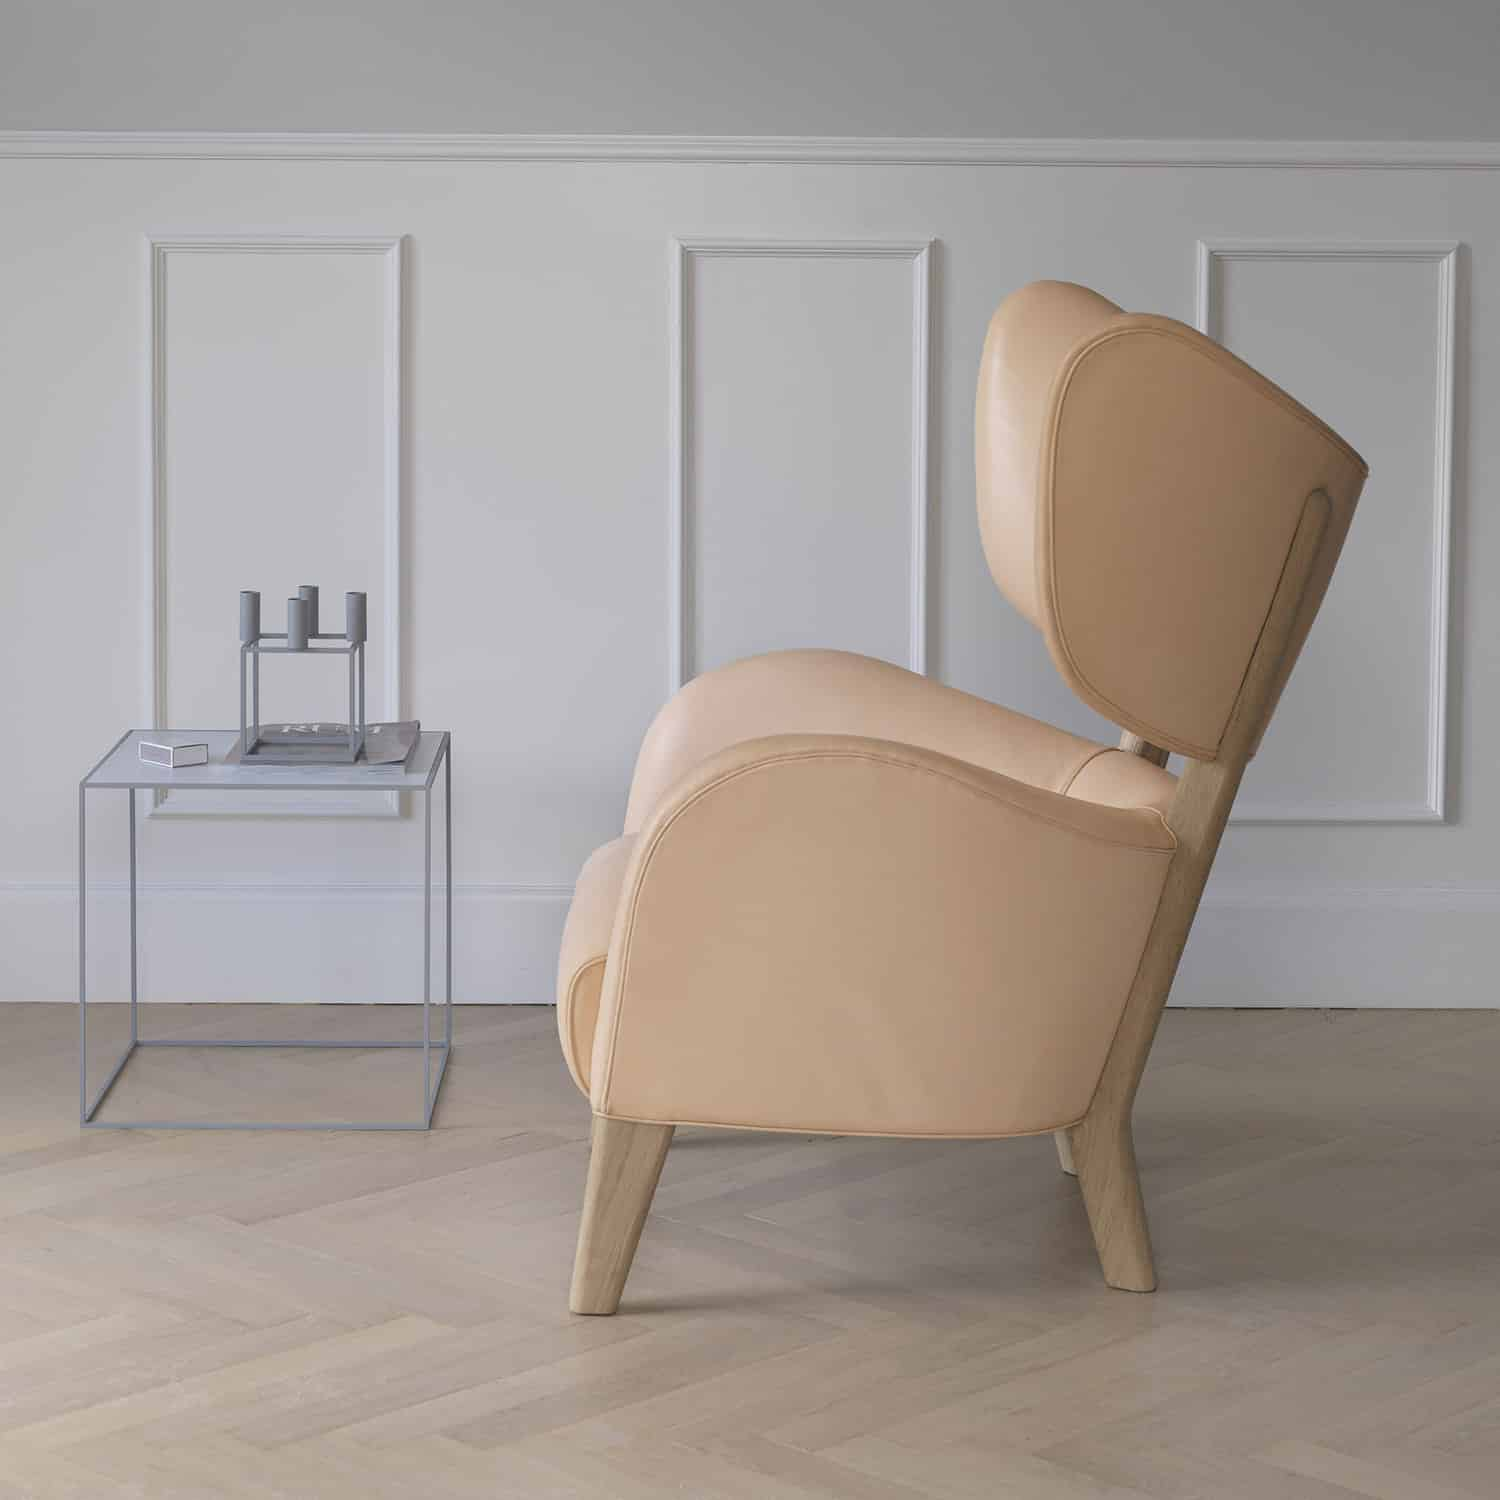 Comscandinavian Chair Design : My Own Chair will be available in stores and at bylassen.com at the ...